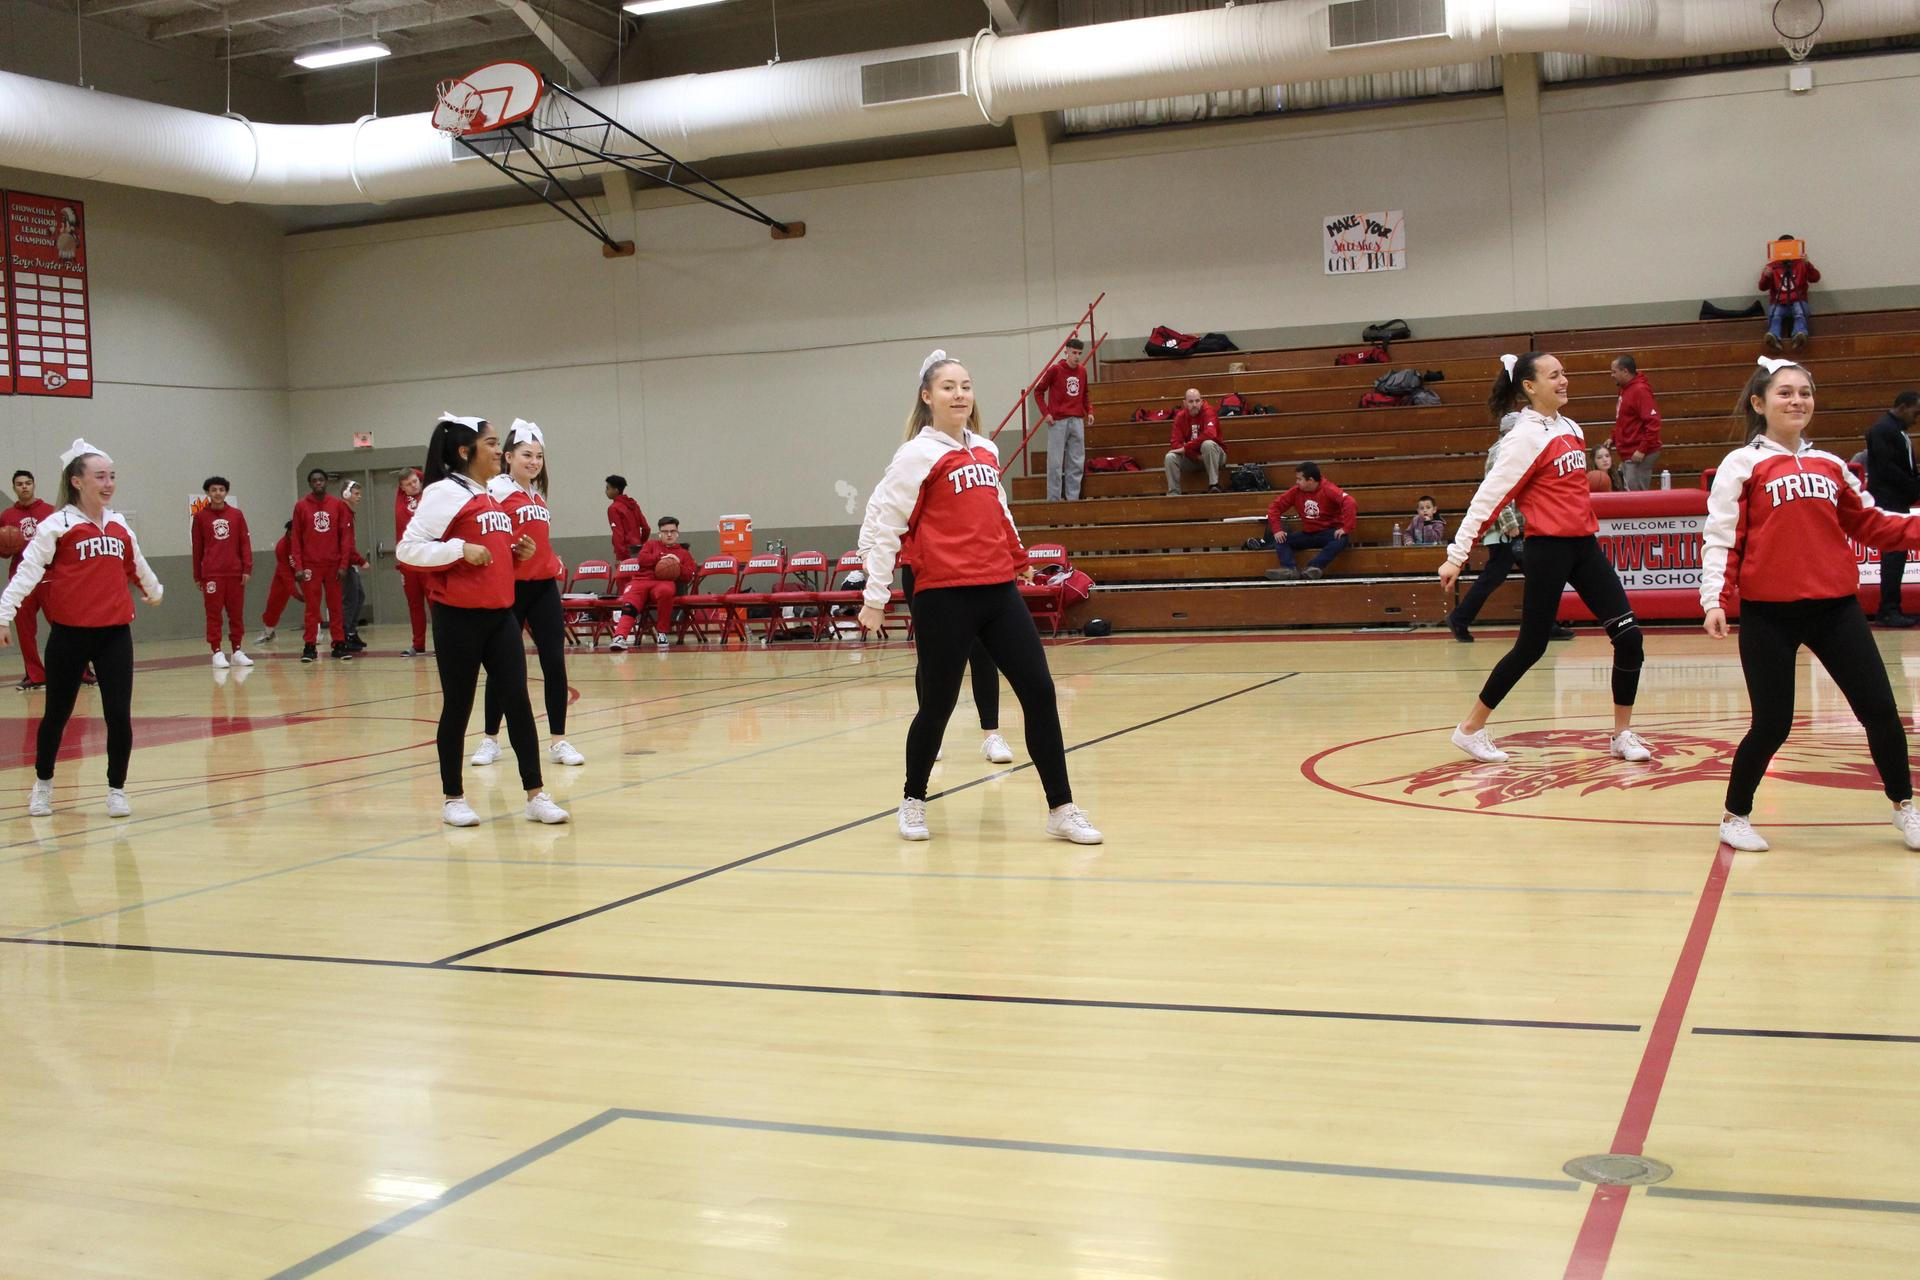 JV Cheer at Sierra basketball game